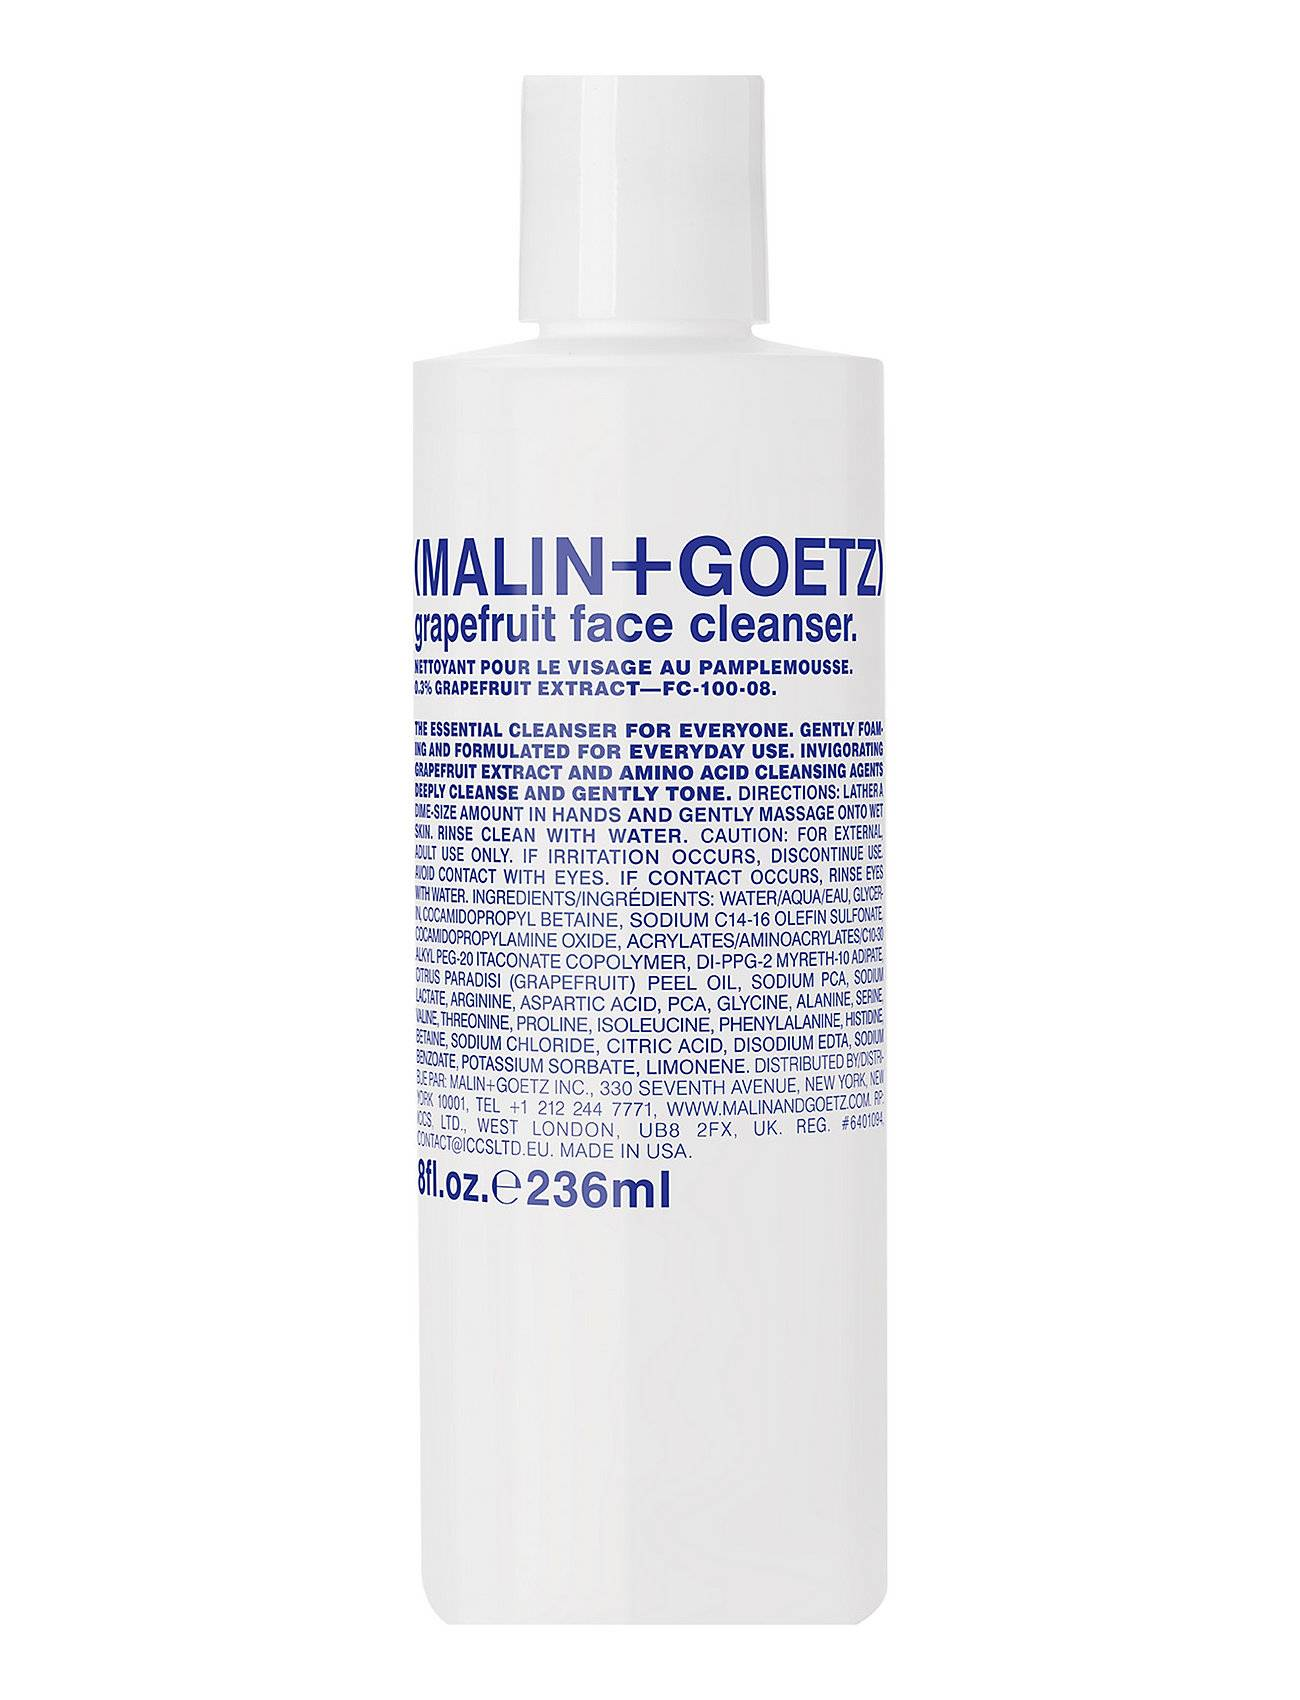 Malin+Goetz Grapefruit Face Cleanser Beauty WOMEN Skin Care Face Cleansers Cleansing Gel Nude Malin+Goetz